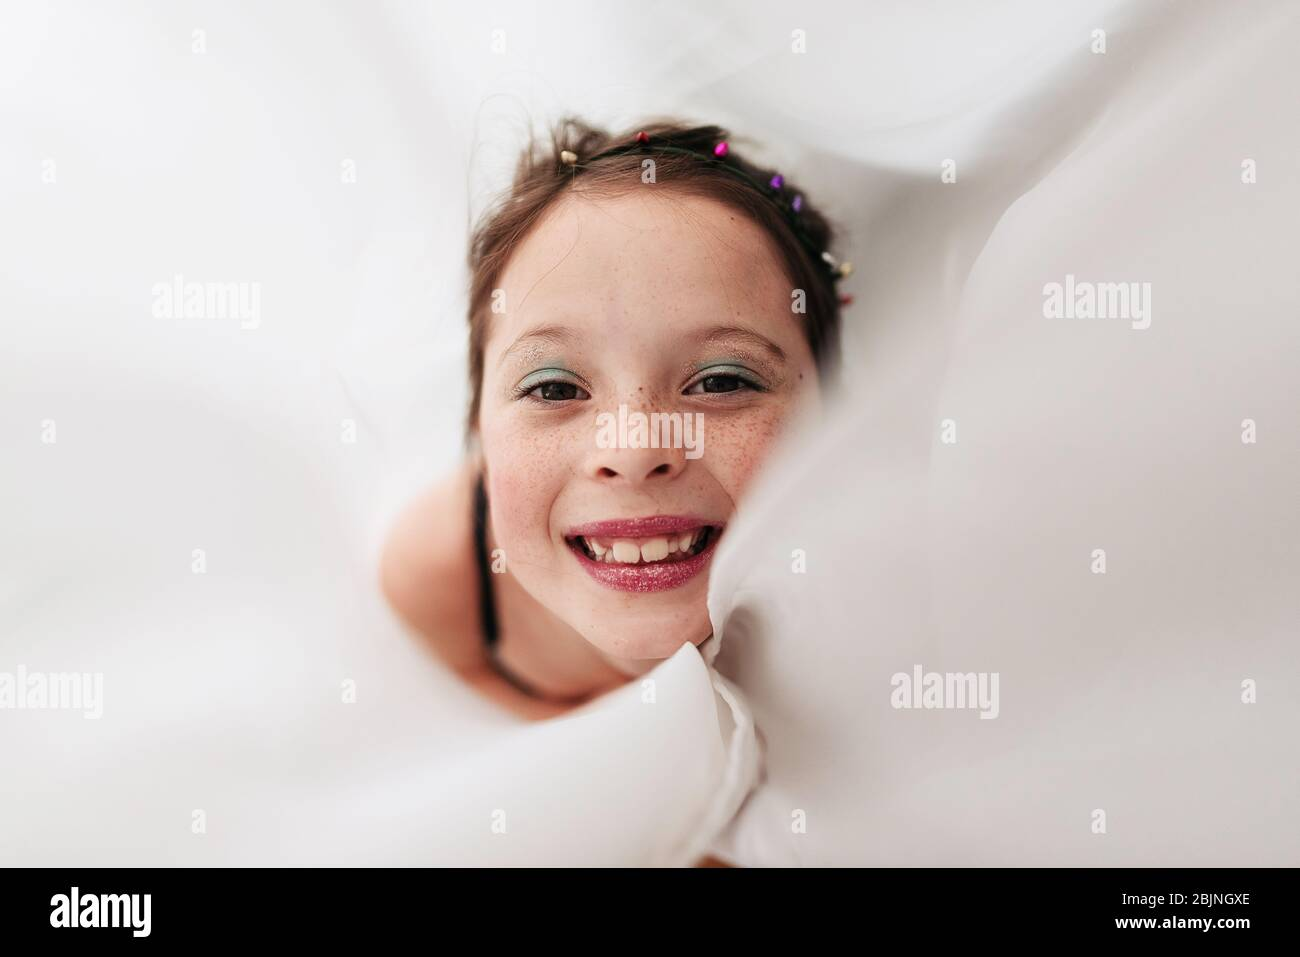 Portrait of a young girl wearing make-up wrapped in a curtain Stock Photo